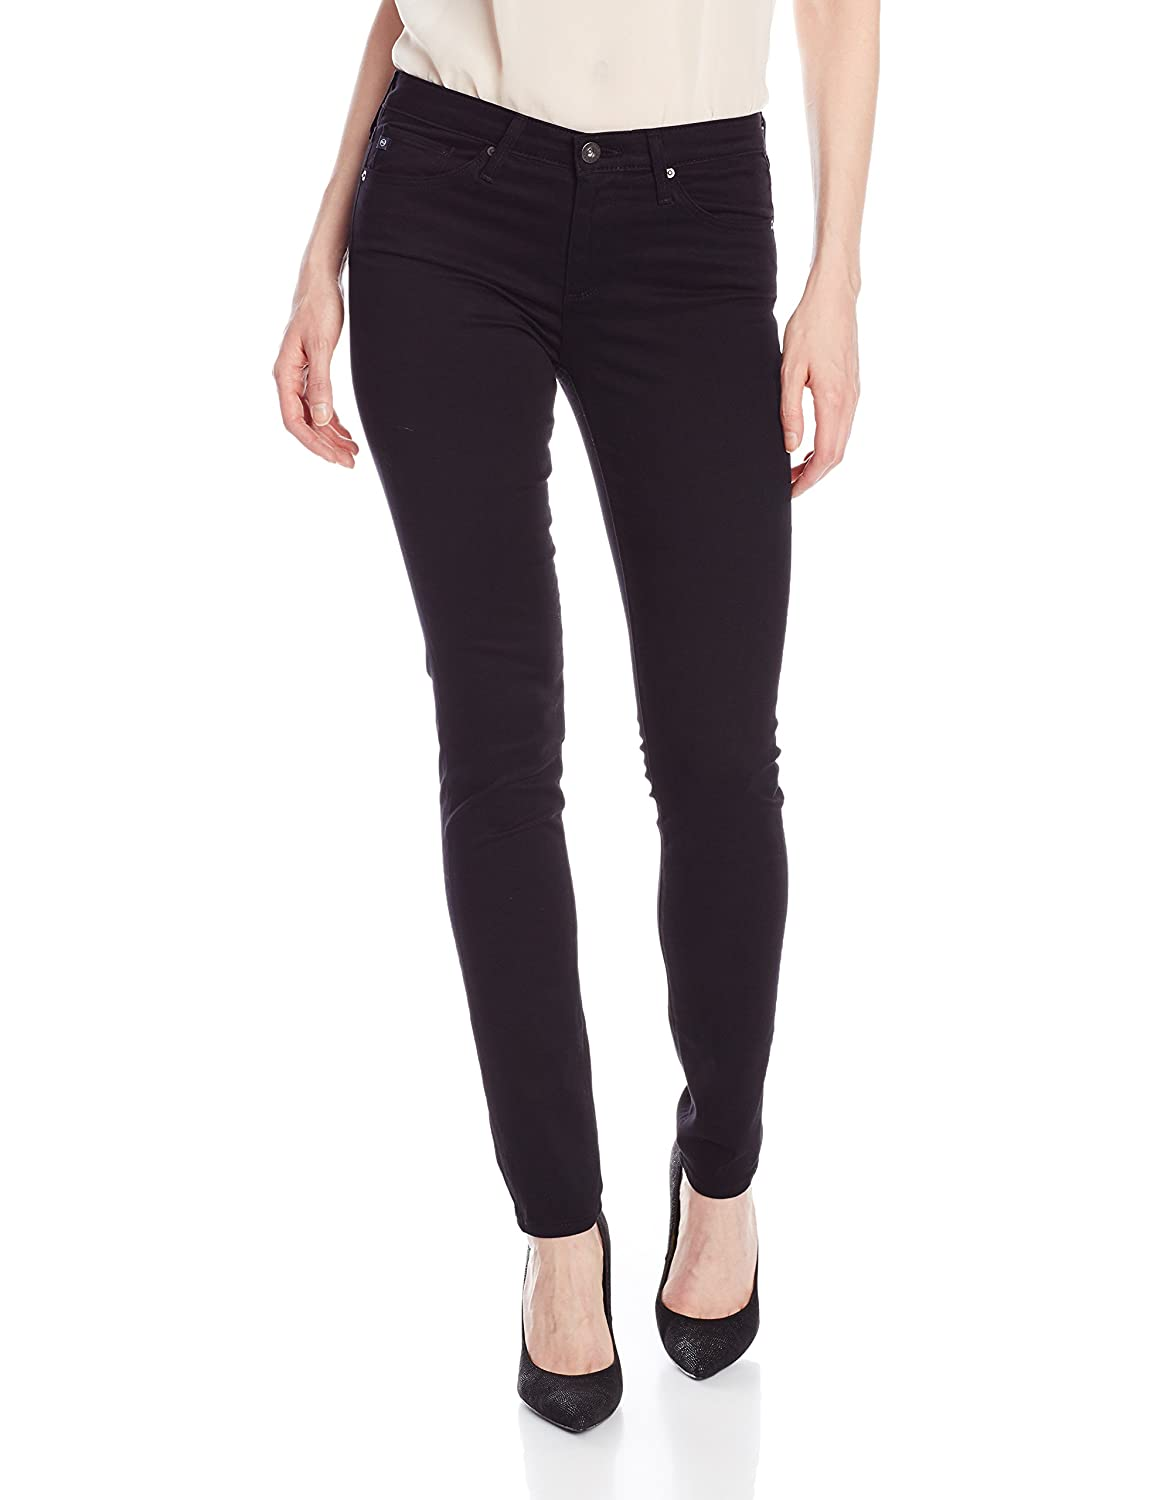 AG Adriano Goldschmied Women's The Prima Skinny Jean in Super Black